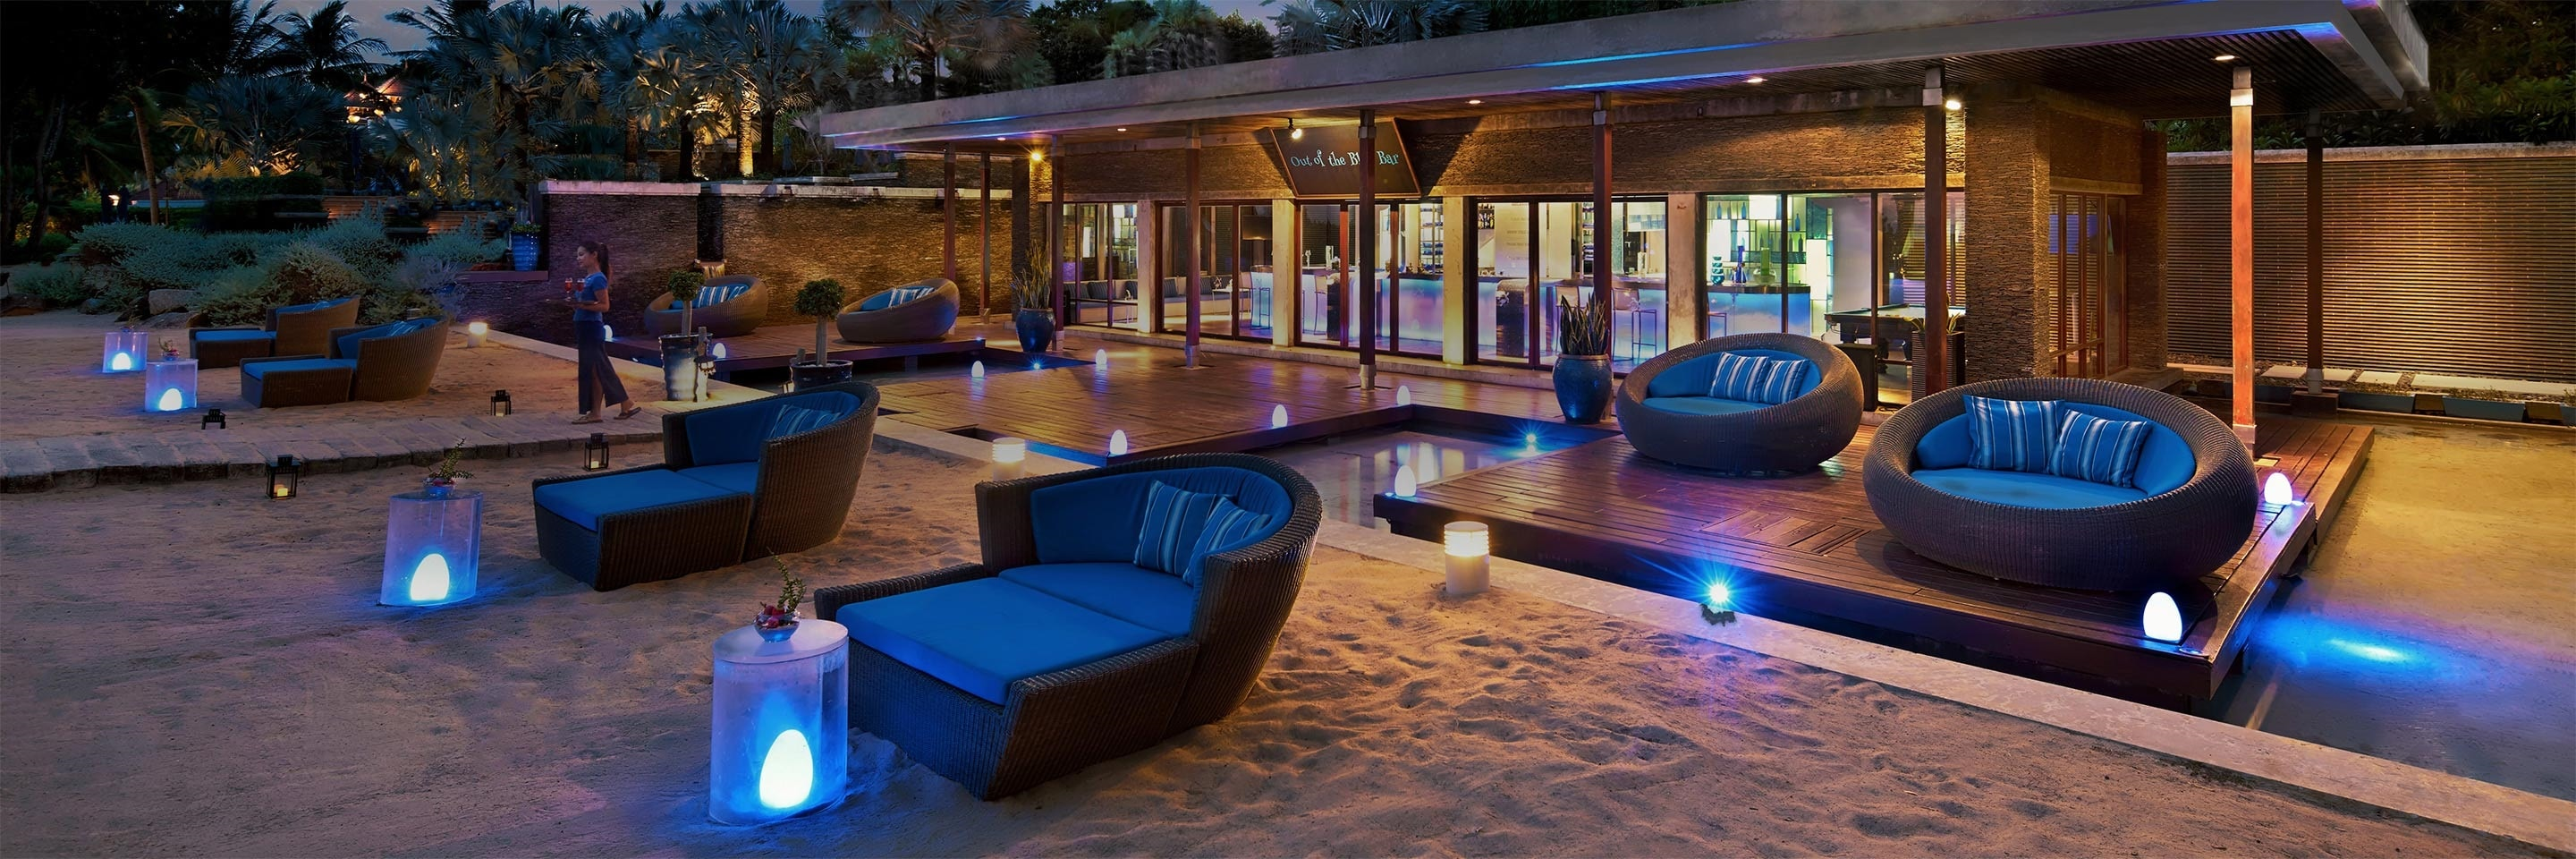 Bar en la playa,  JW Marriott Phuket Resort & Spa